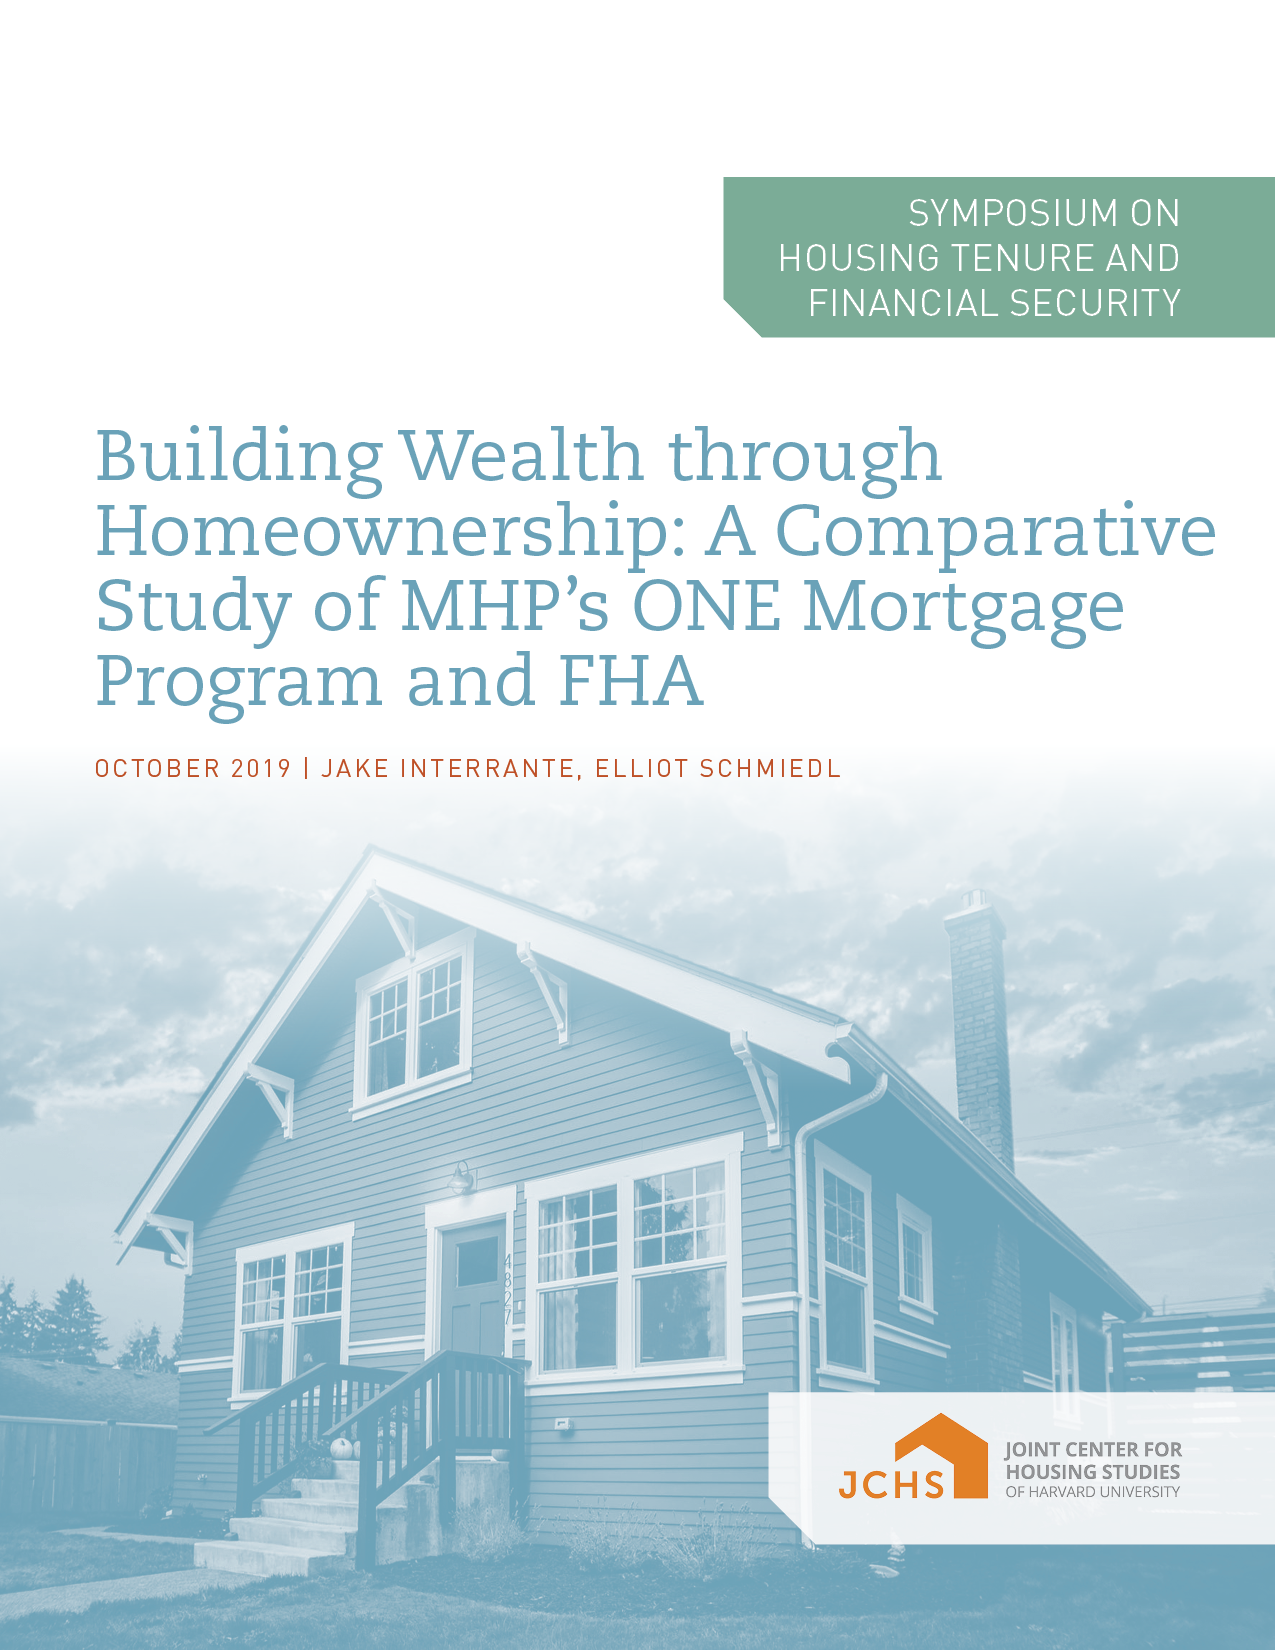 Building Wealth through Homeownership: A Comparative Study of MHP's ONE Mortgage Program and FHA